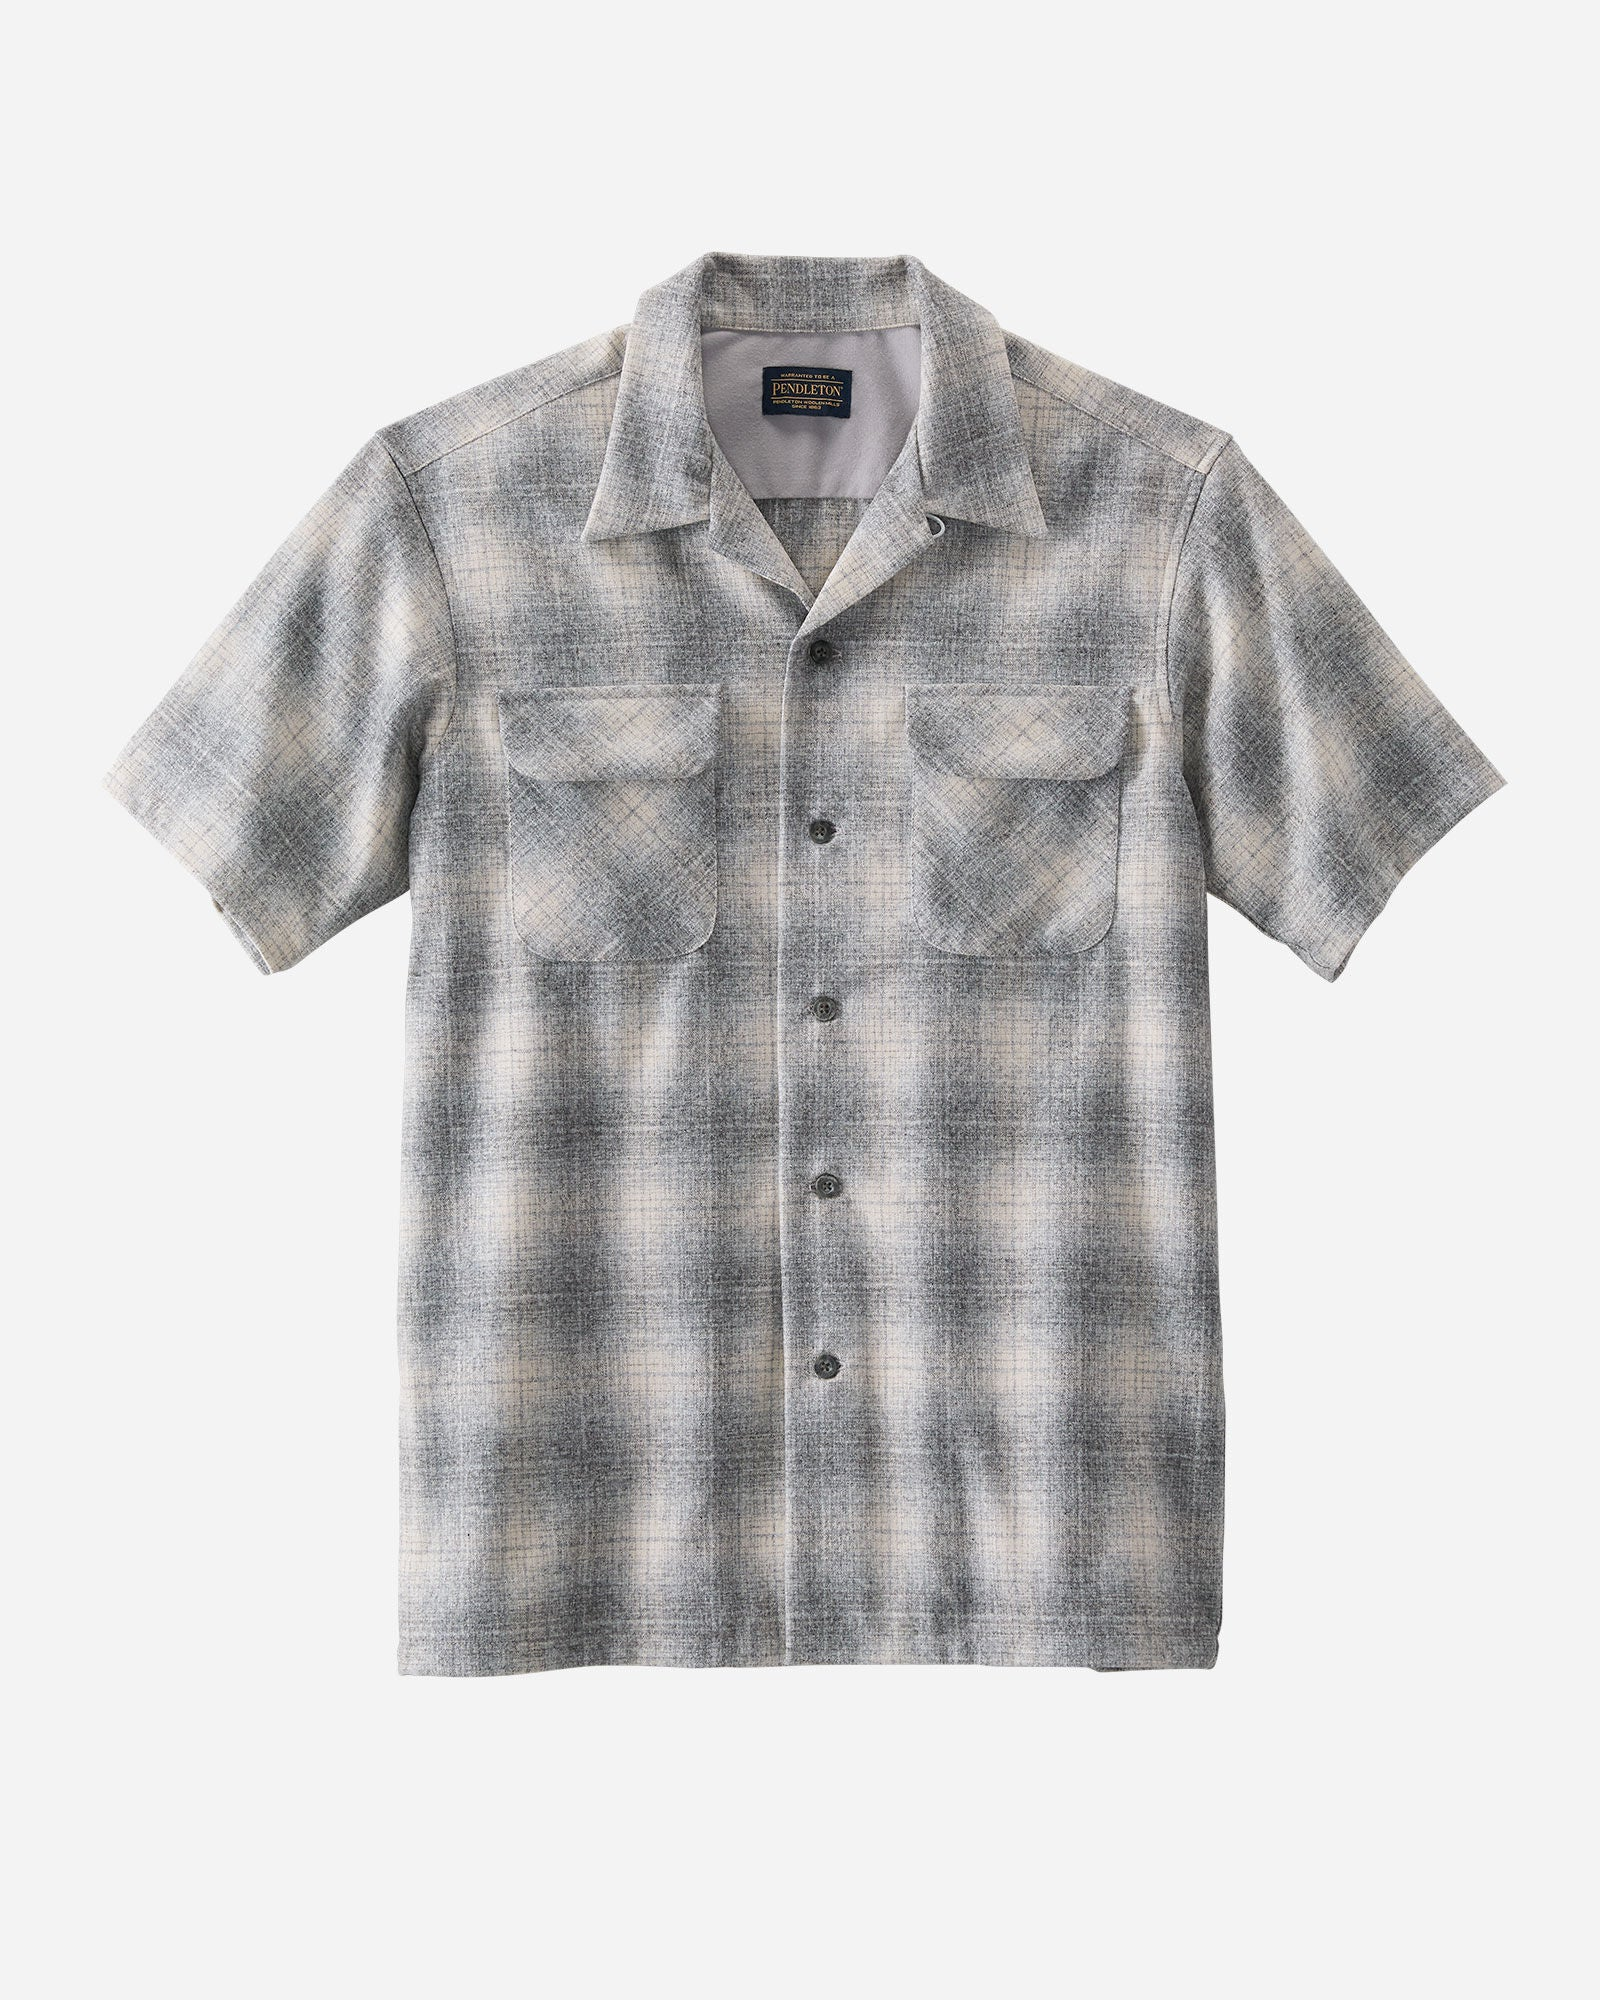 PENDLETON SHORT SLEEVE BOARD SHIRT